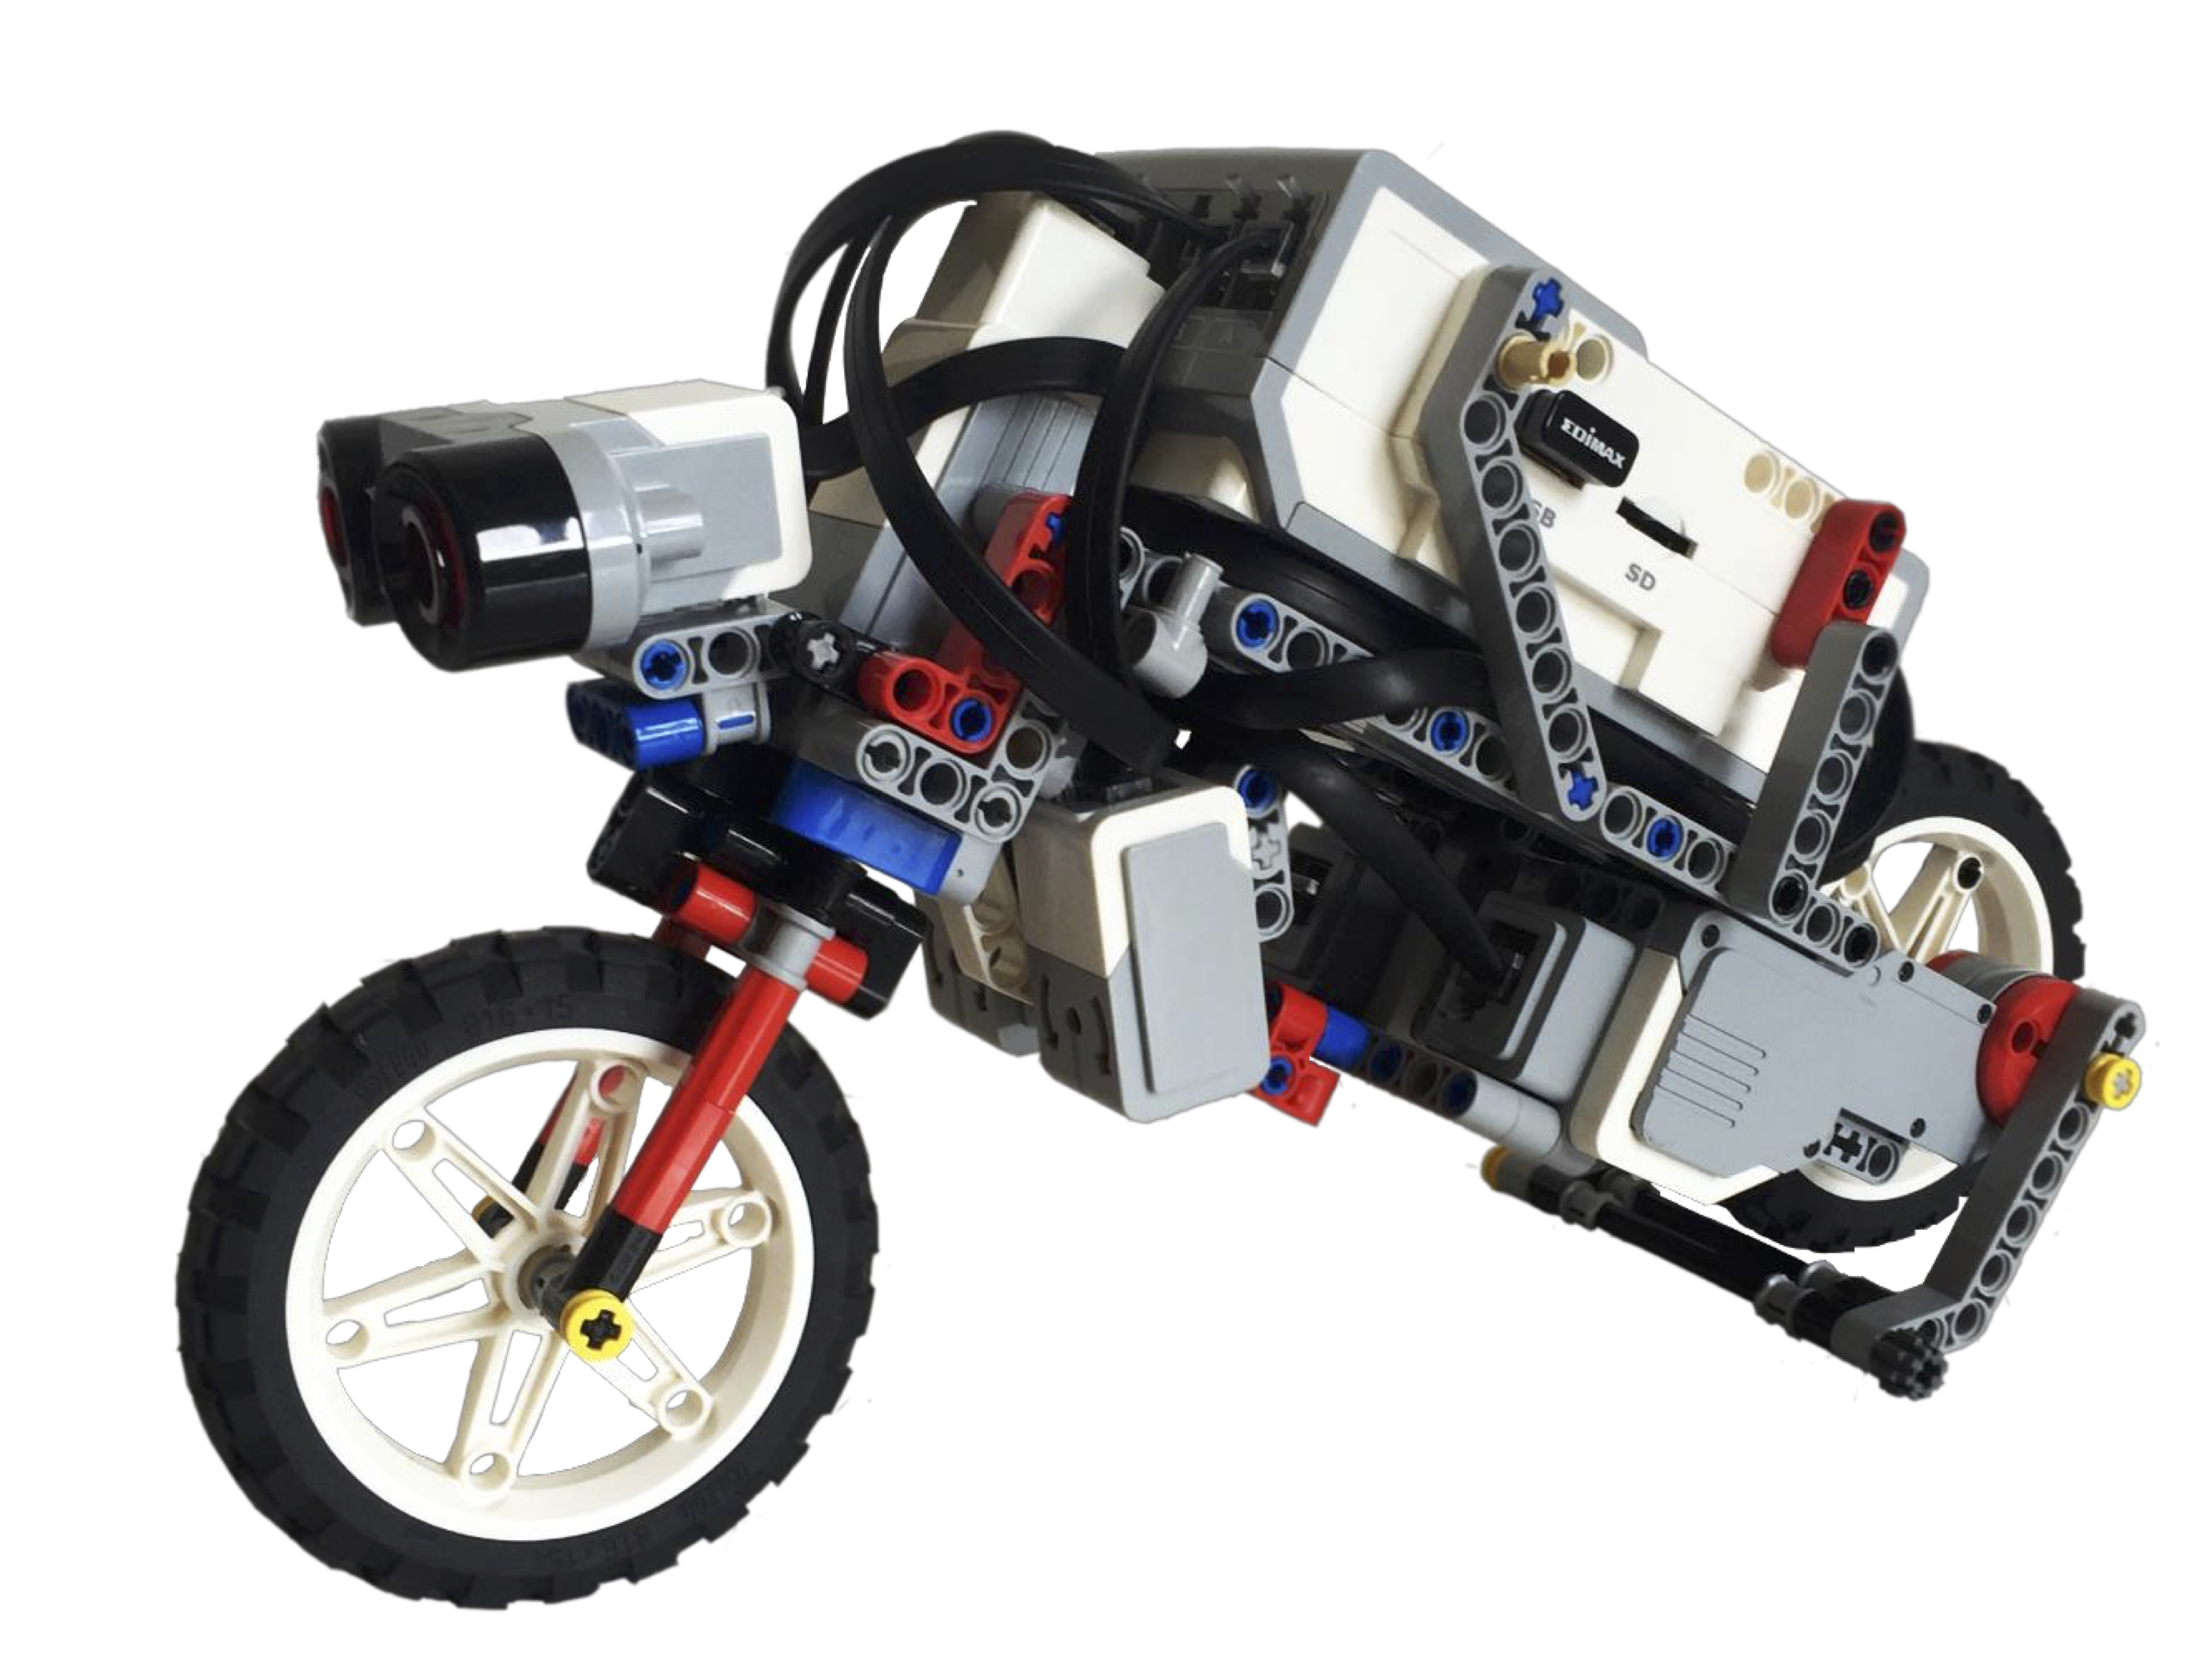 Lego Mindstorms Ev3 Bike Project File Exchange Matlab Central